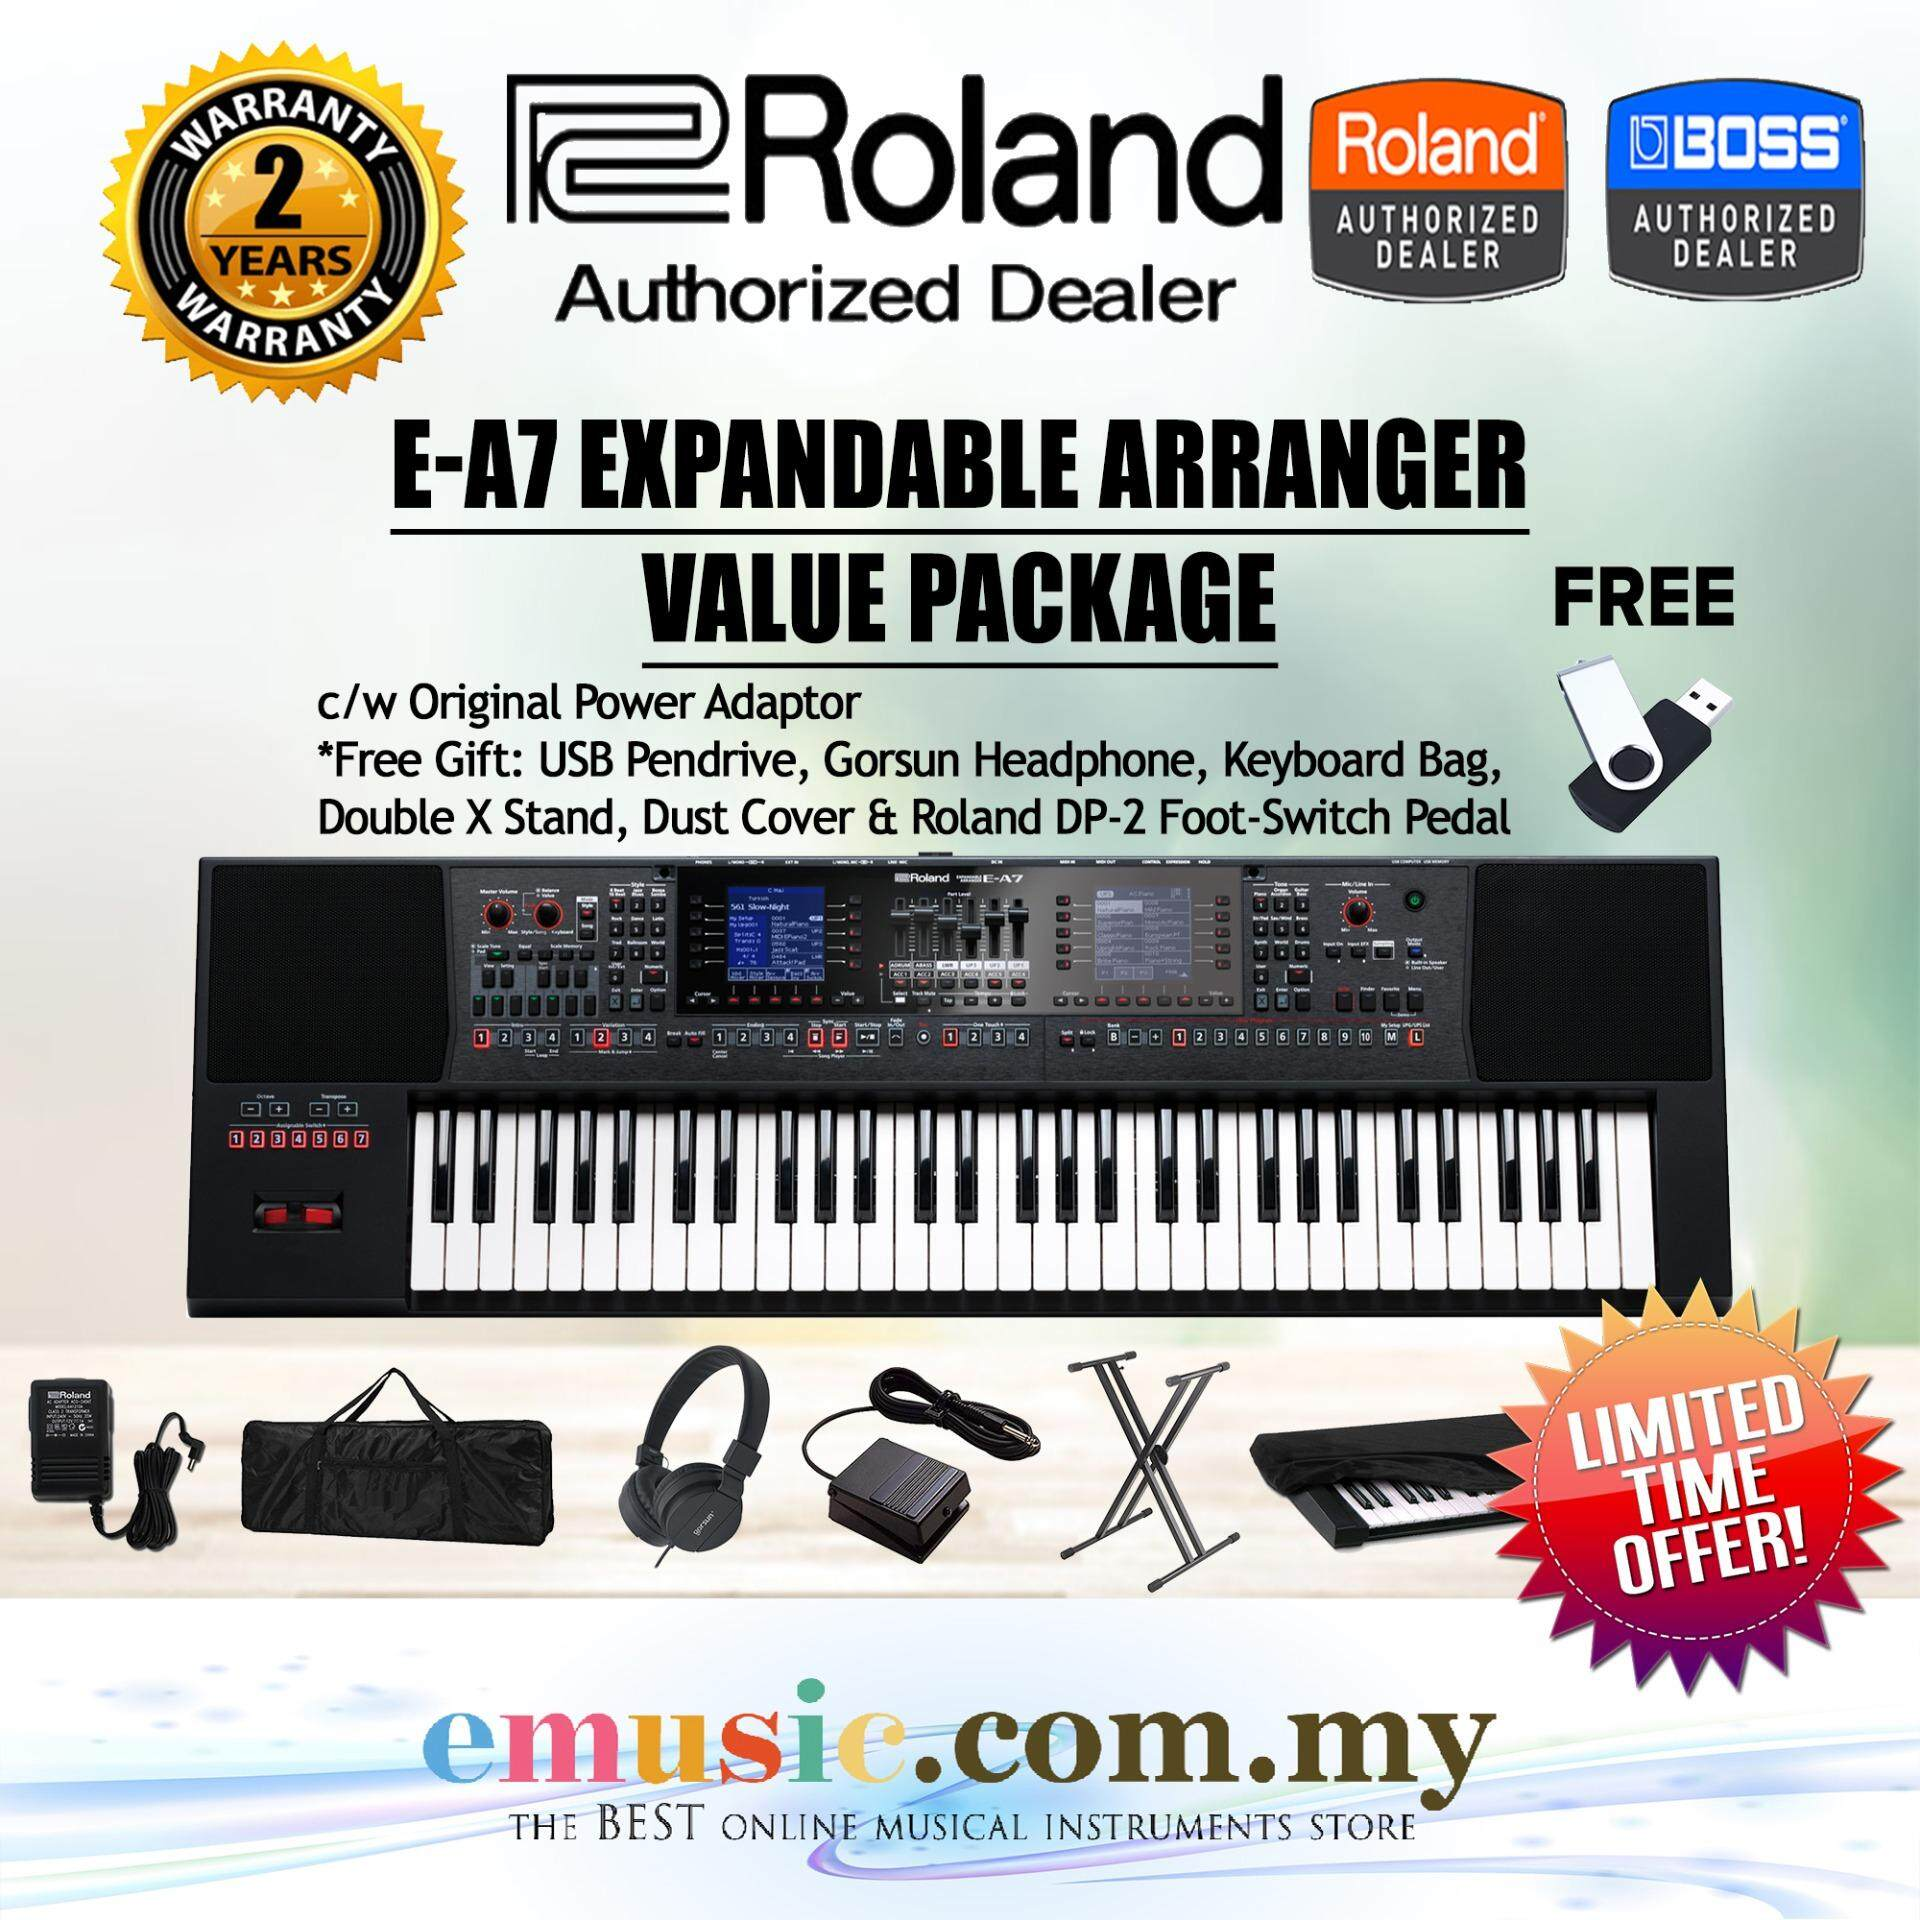 Roland Keyboards & Pianos - Portable Keyboards price in Malaysia